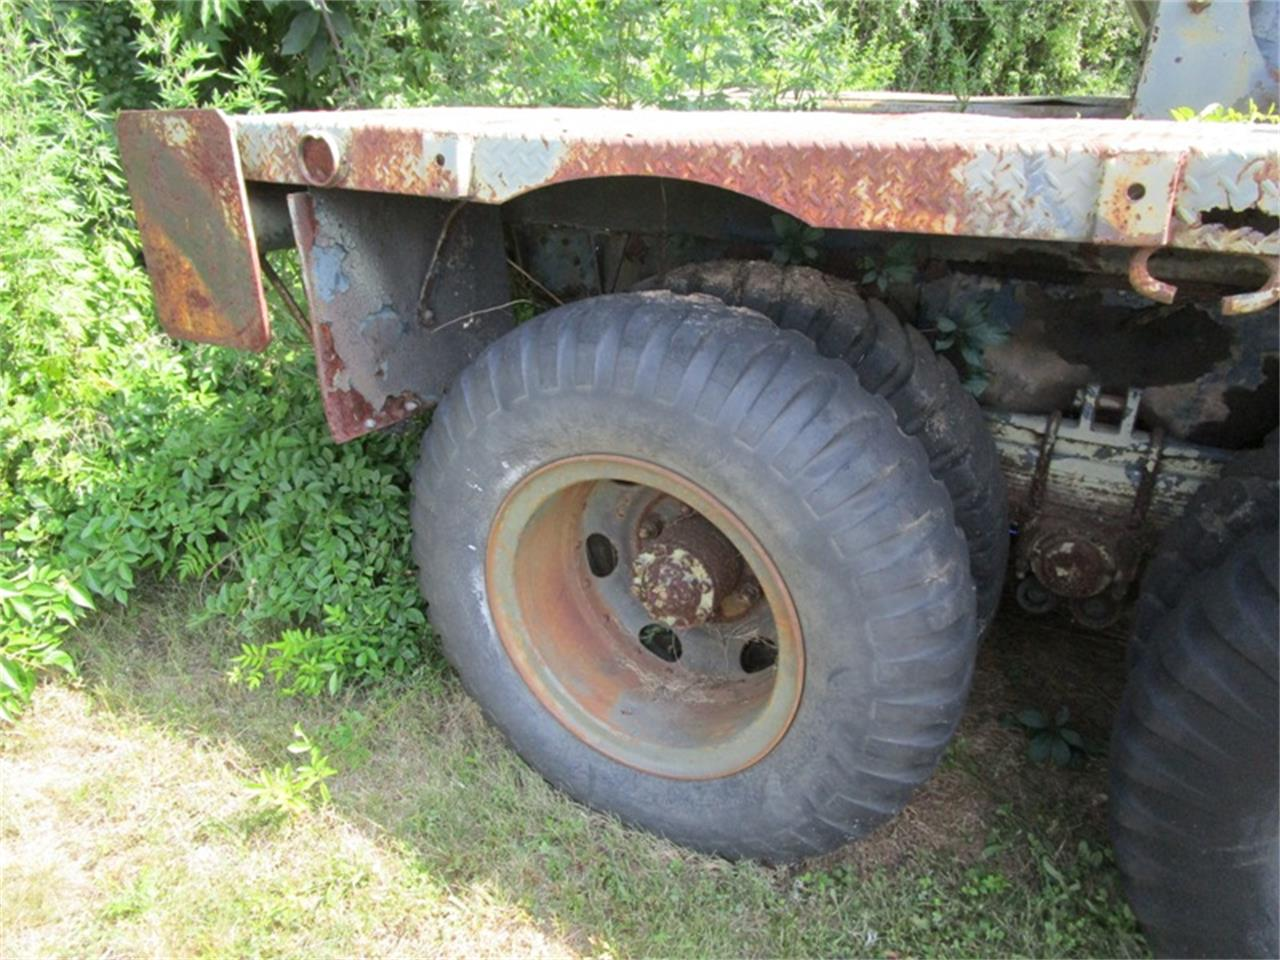 Large Picture of Classic 1951 REO Truck - $5,000.00 Offered by Auto Archeologist - Q4KE